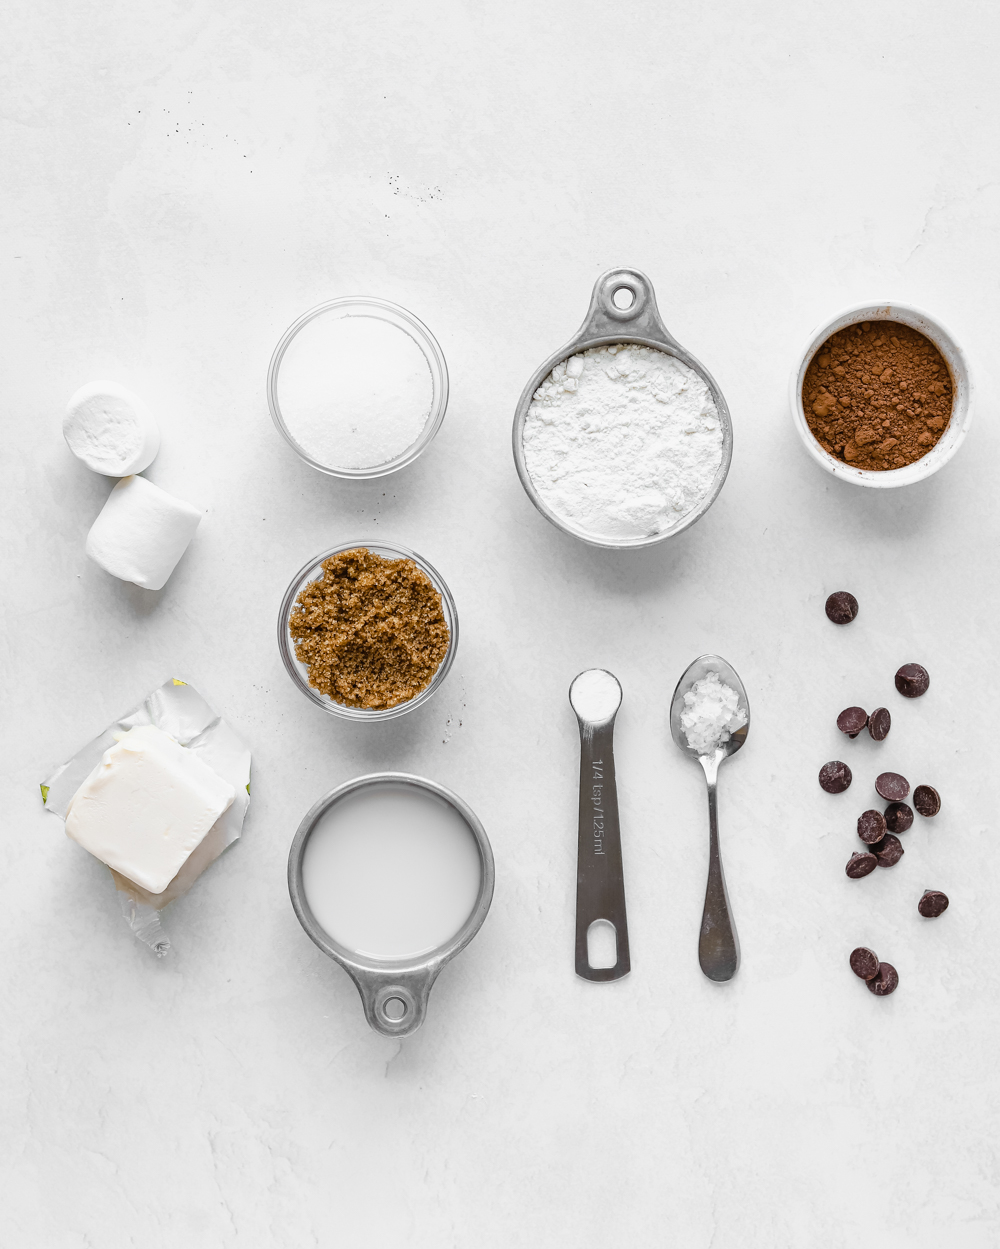 Ingredients to make vegan hot chocolate cookies: butter, brown sugar, white sugar, cocoa powder, flour, almond milk, marshmallows, chocolate chips, salt, and baking soda.